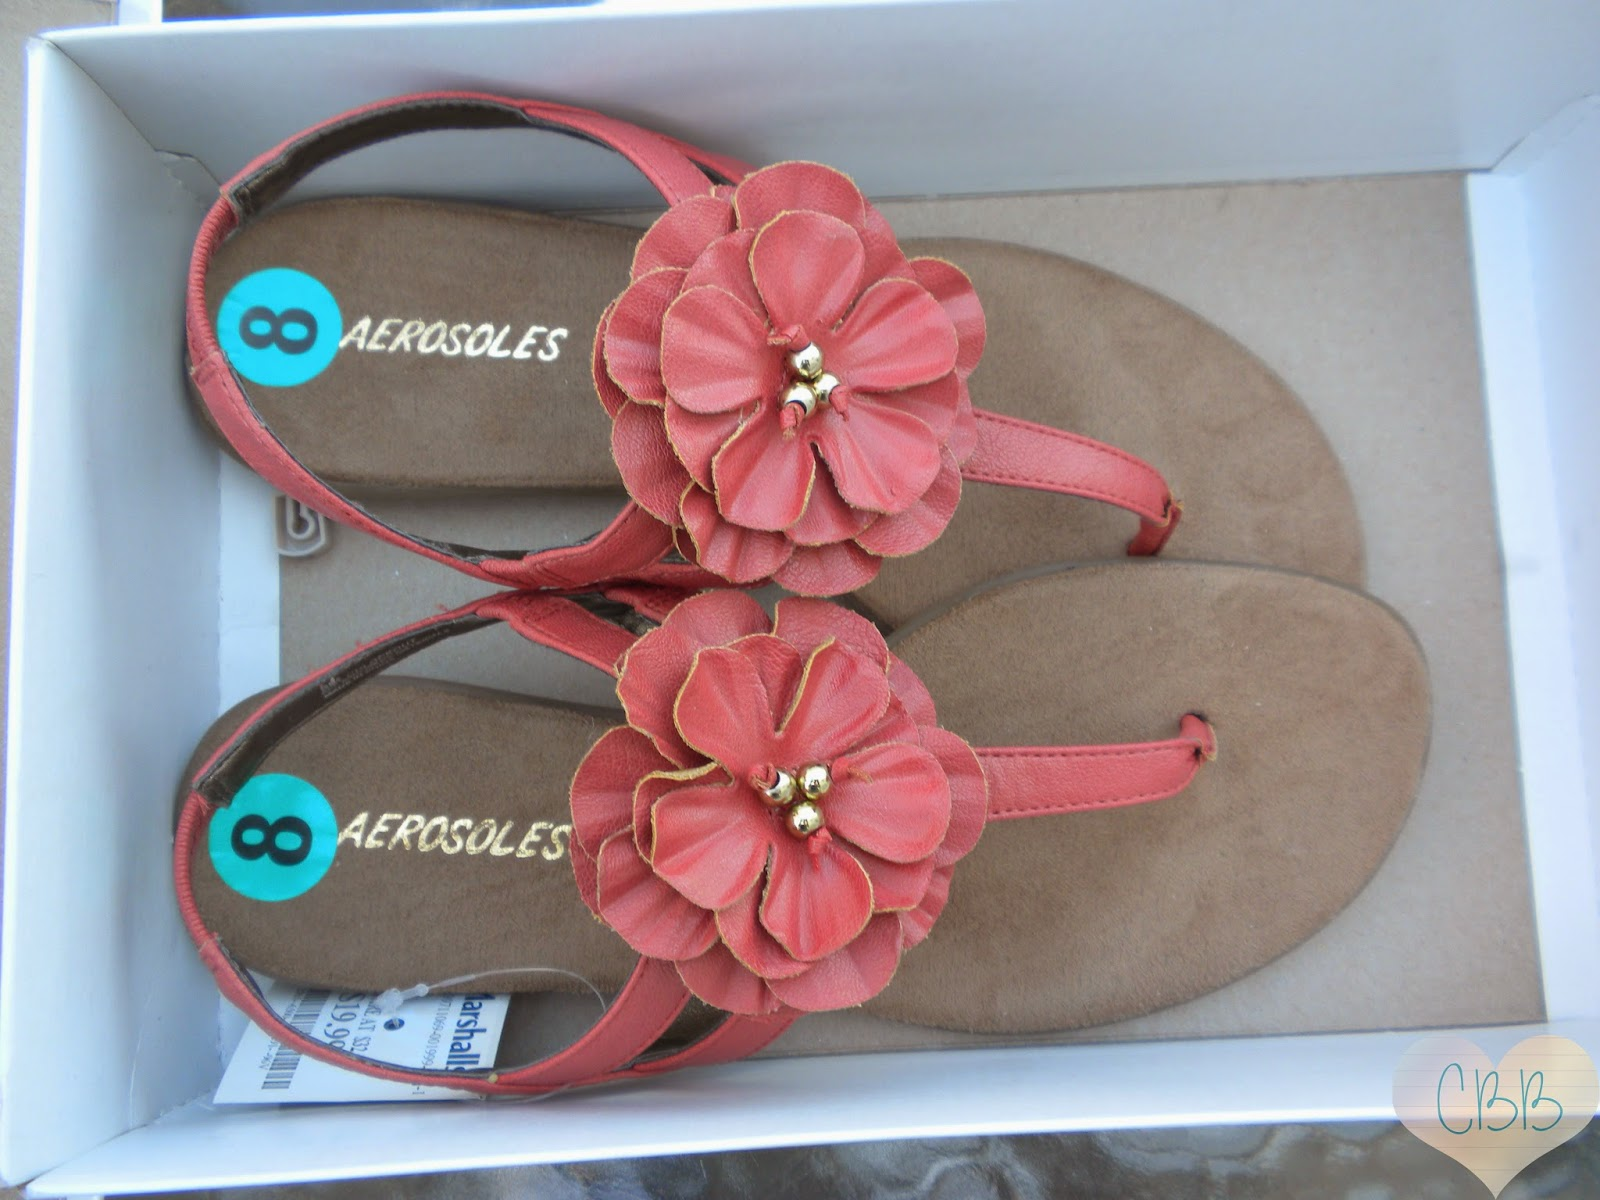 Aerosoles Sandals (Hot Weather Staples)